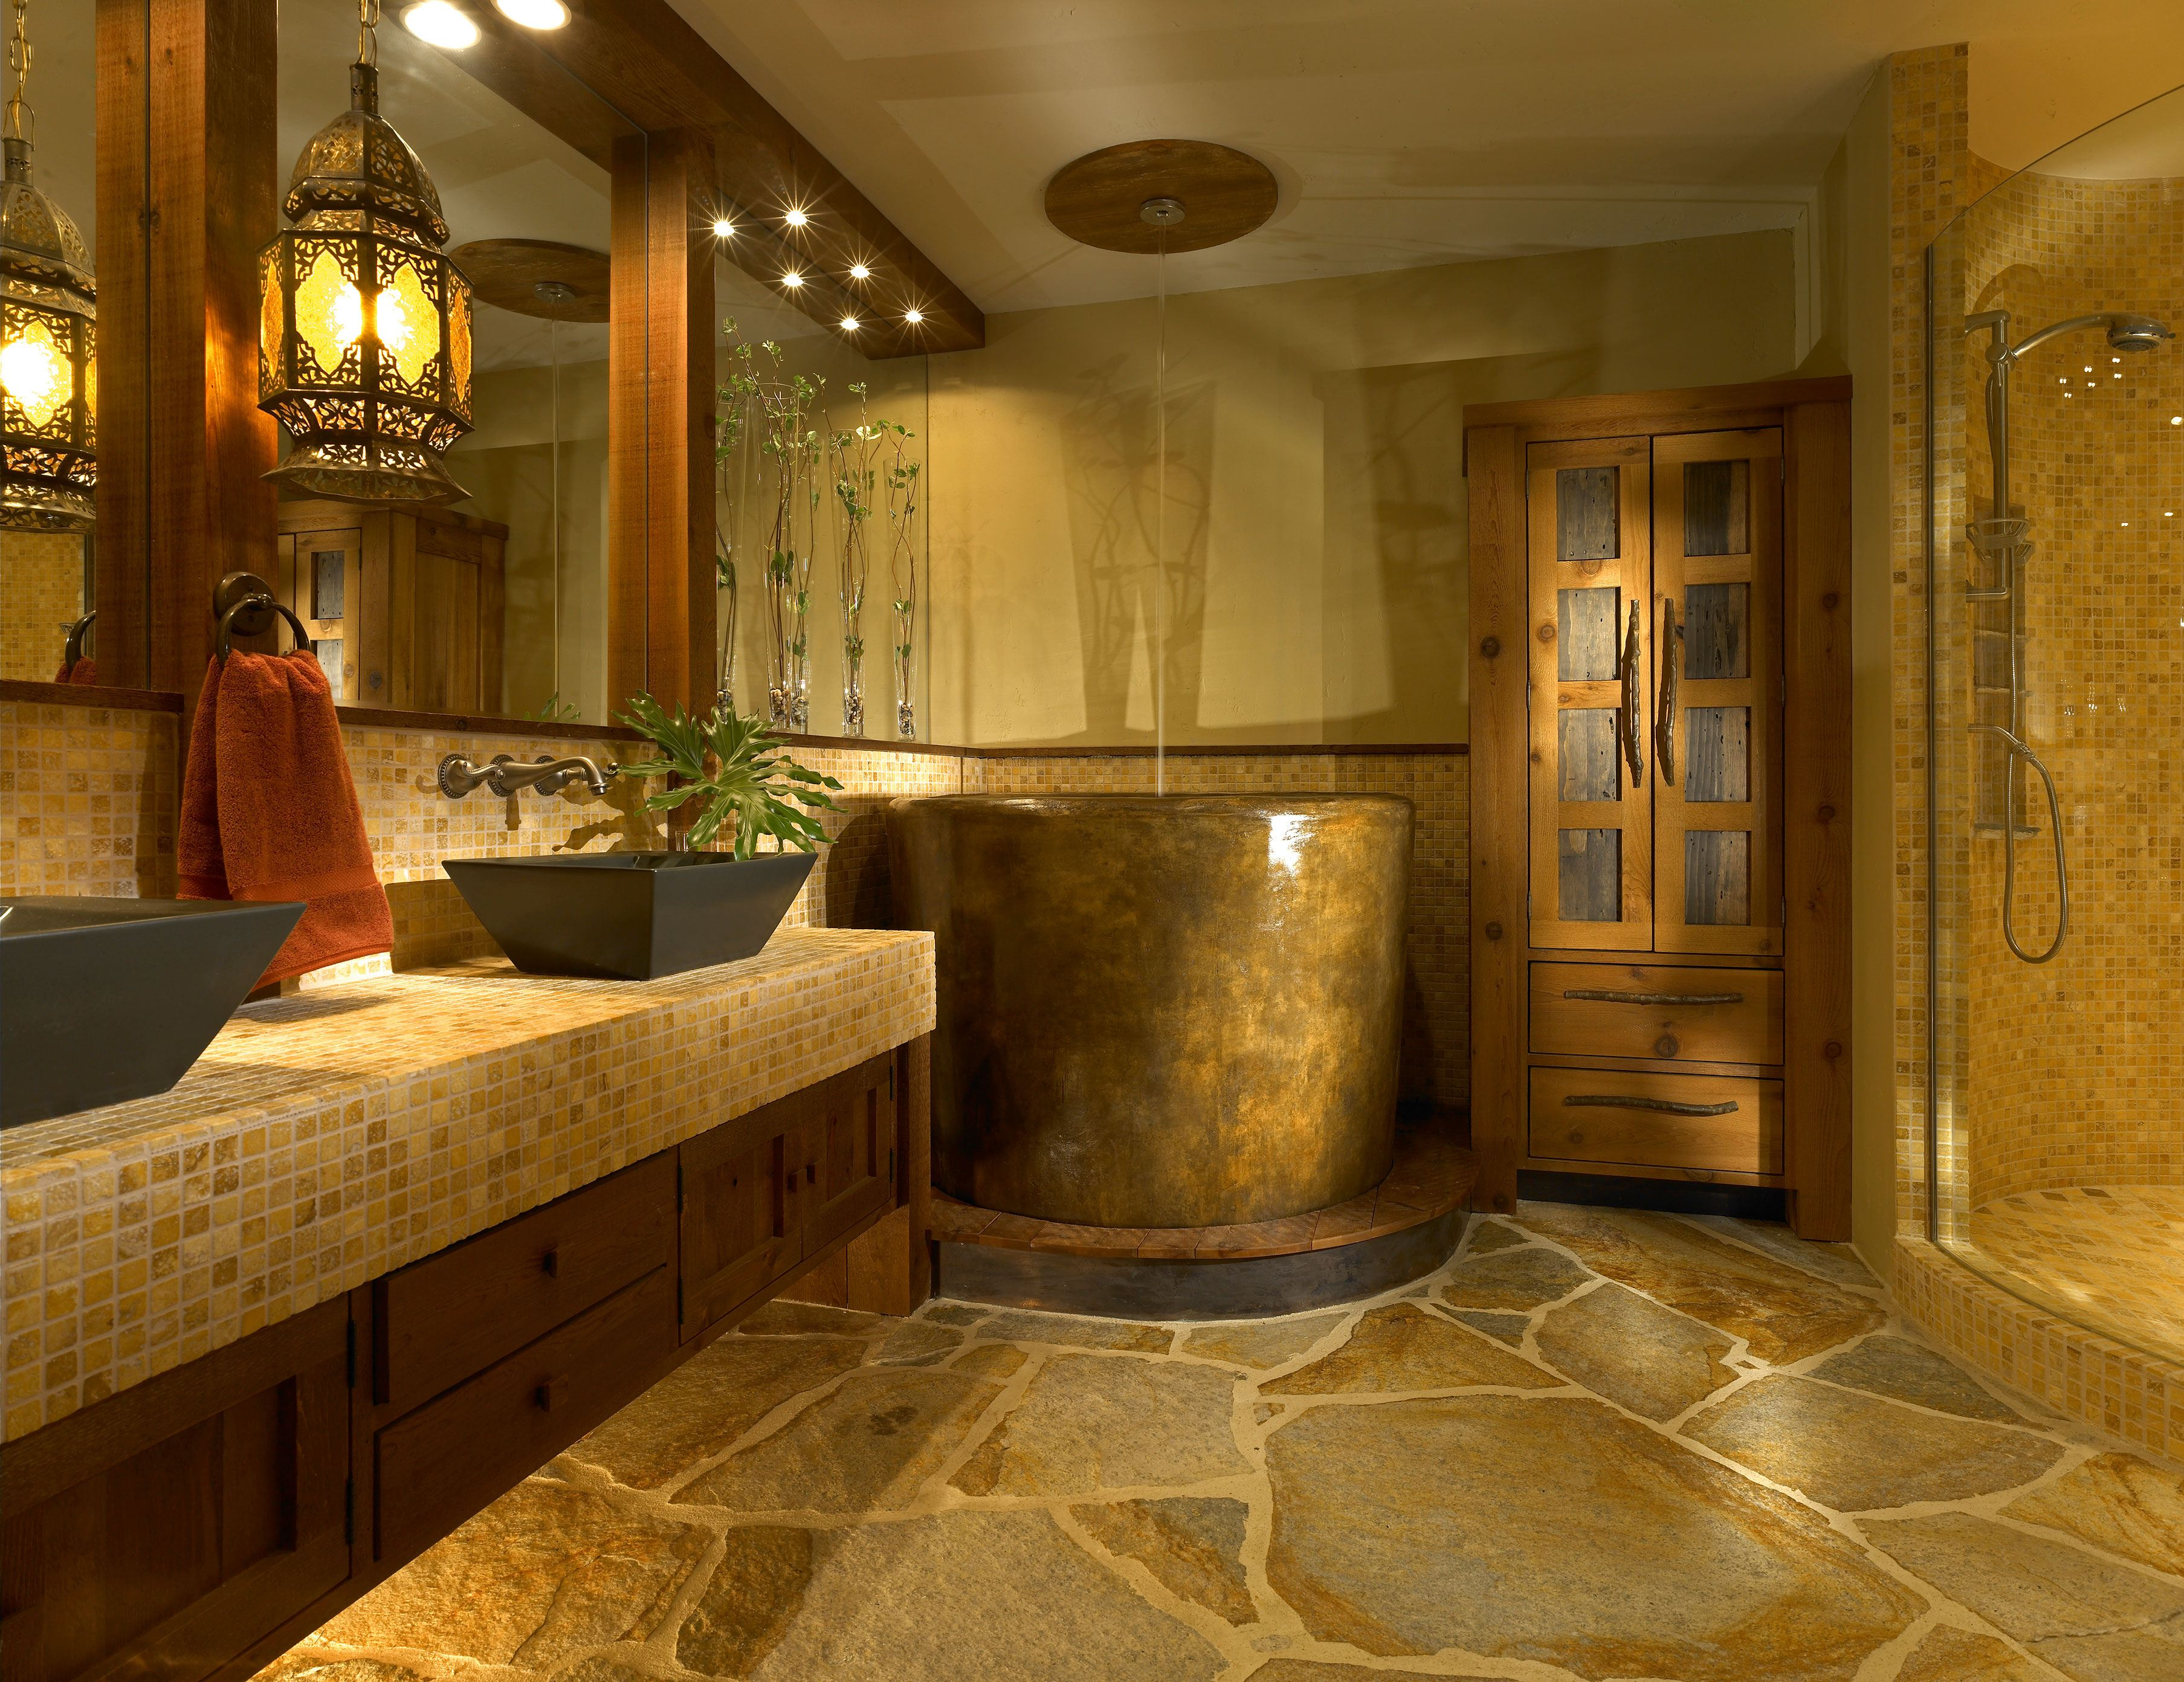 10 Of The Worlds Most Luxurious Bathrooms - Terrys Fabrics's Blog